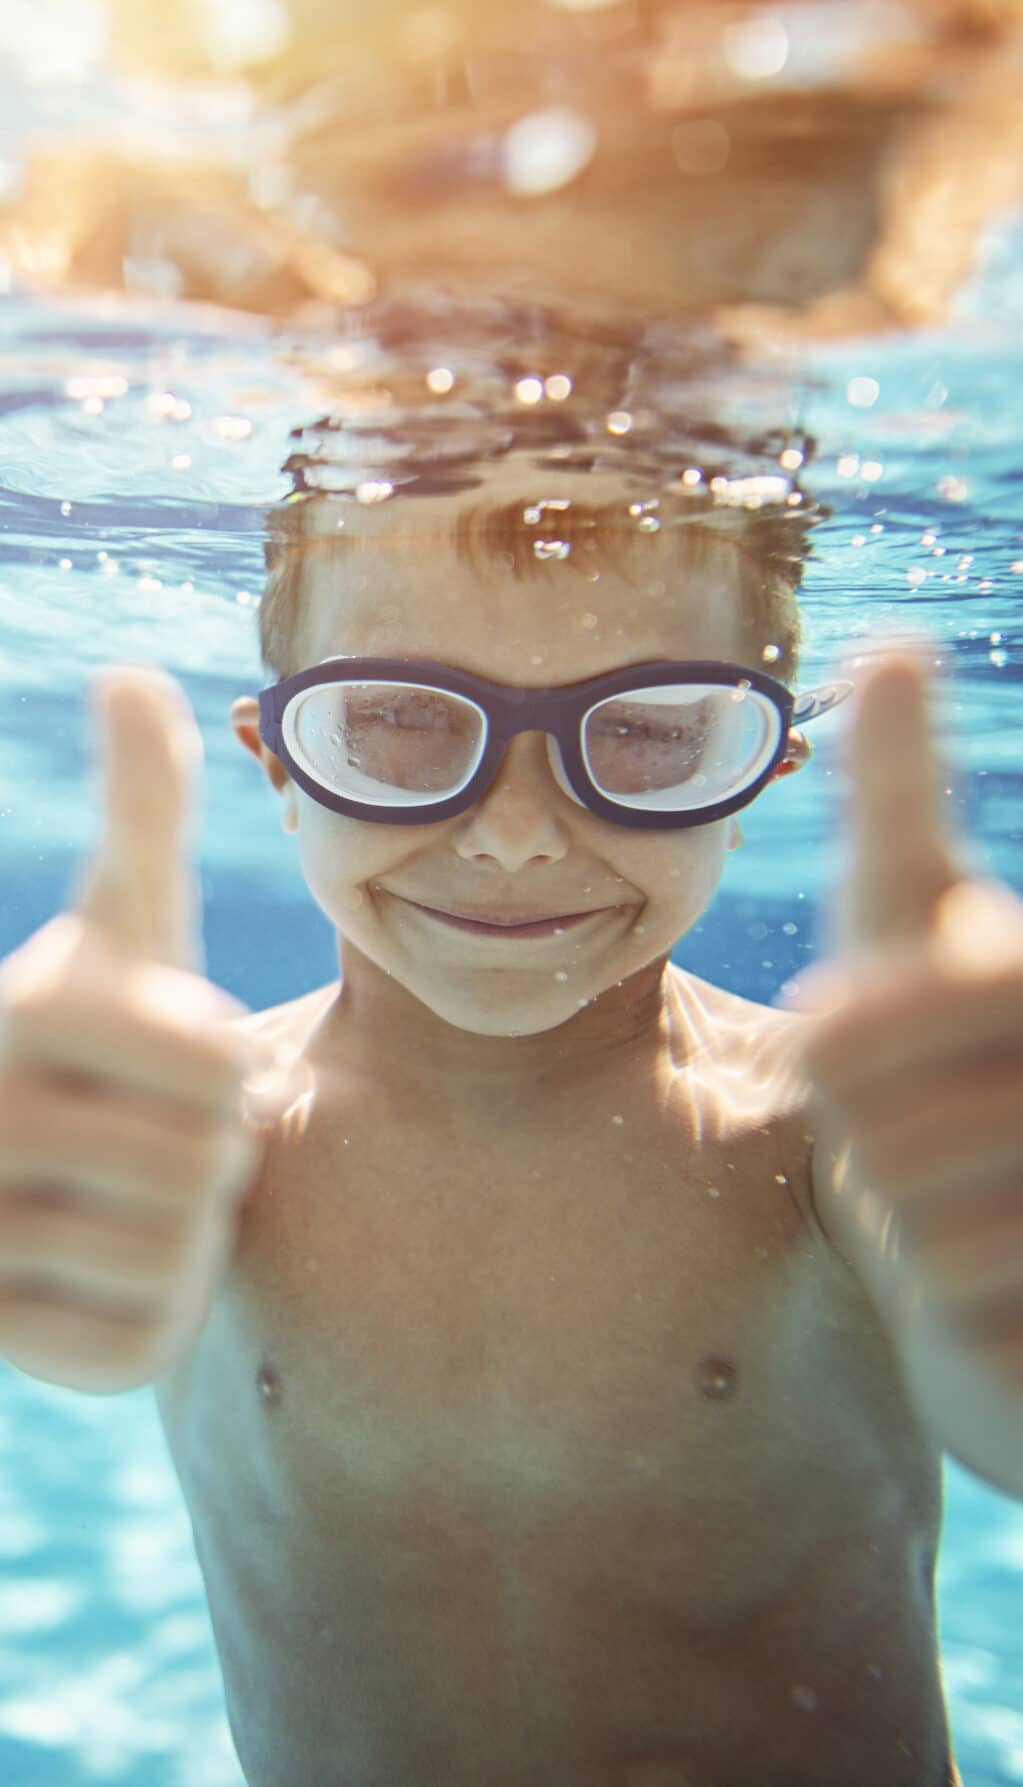 Little boy in pool showing thumbs up